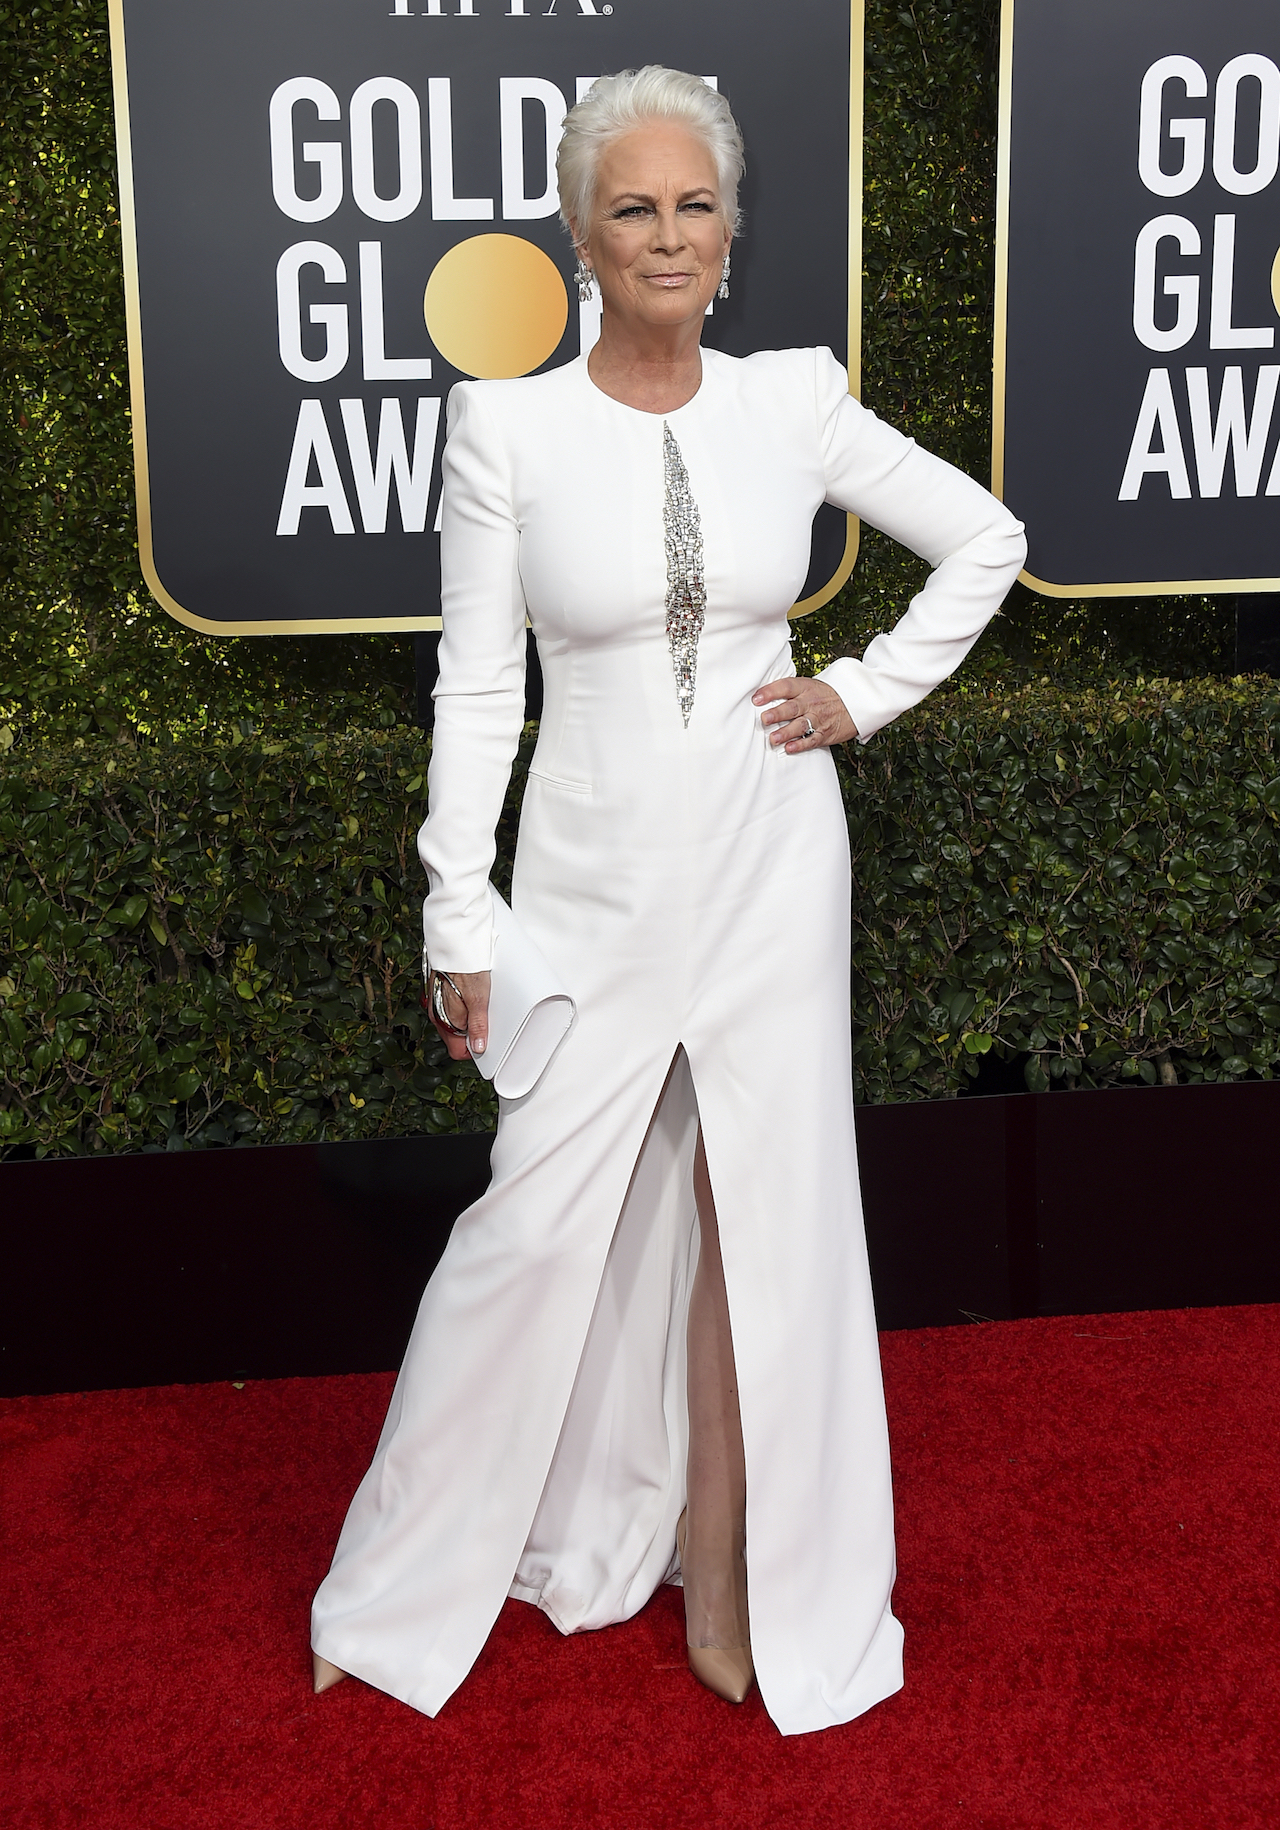 <div class='meta'><div class='origin-logo' data-origin='AP'></div><span class='caption-text' data-credit='Jordan Strauss/Invision/AP'>Jamie Lee Curtis arrives at the 76th annual Golden Globe Awards at the Beverly Hilton Hotel on Sunday, Jan. 6, 2019, in Beverly Hills, Calif.</span></div>